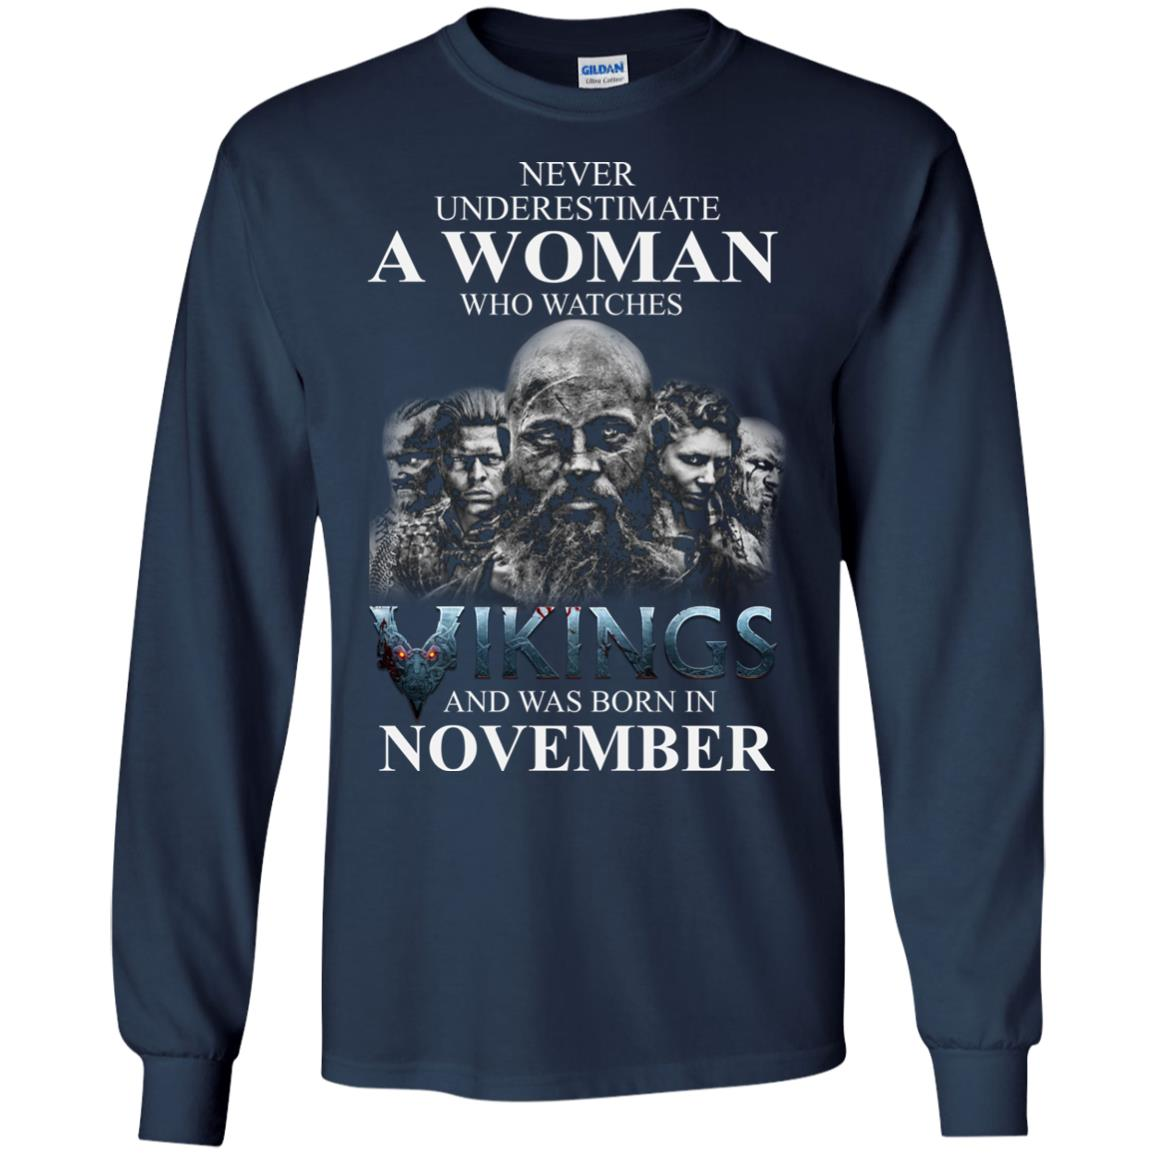 image 1234 - Never Underestimate A woman who watches Vikings and was born in November shirt